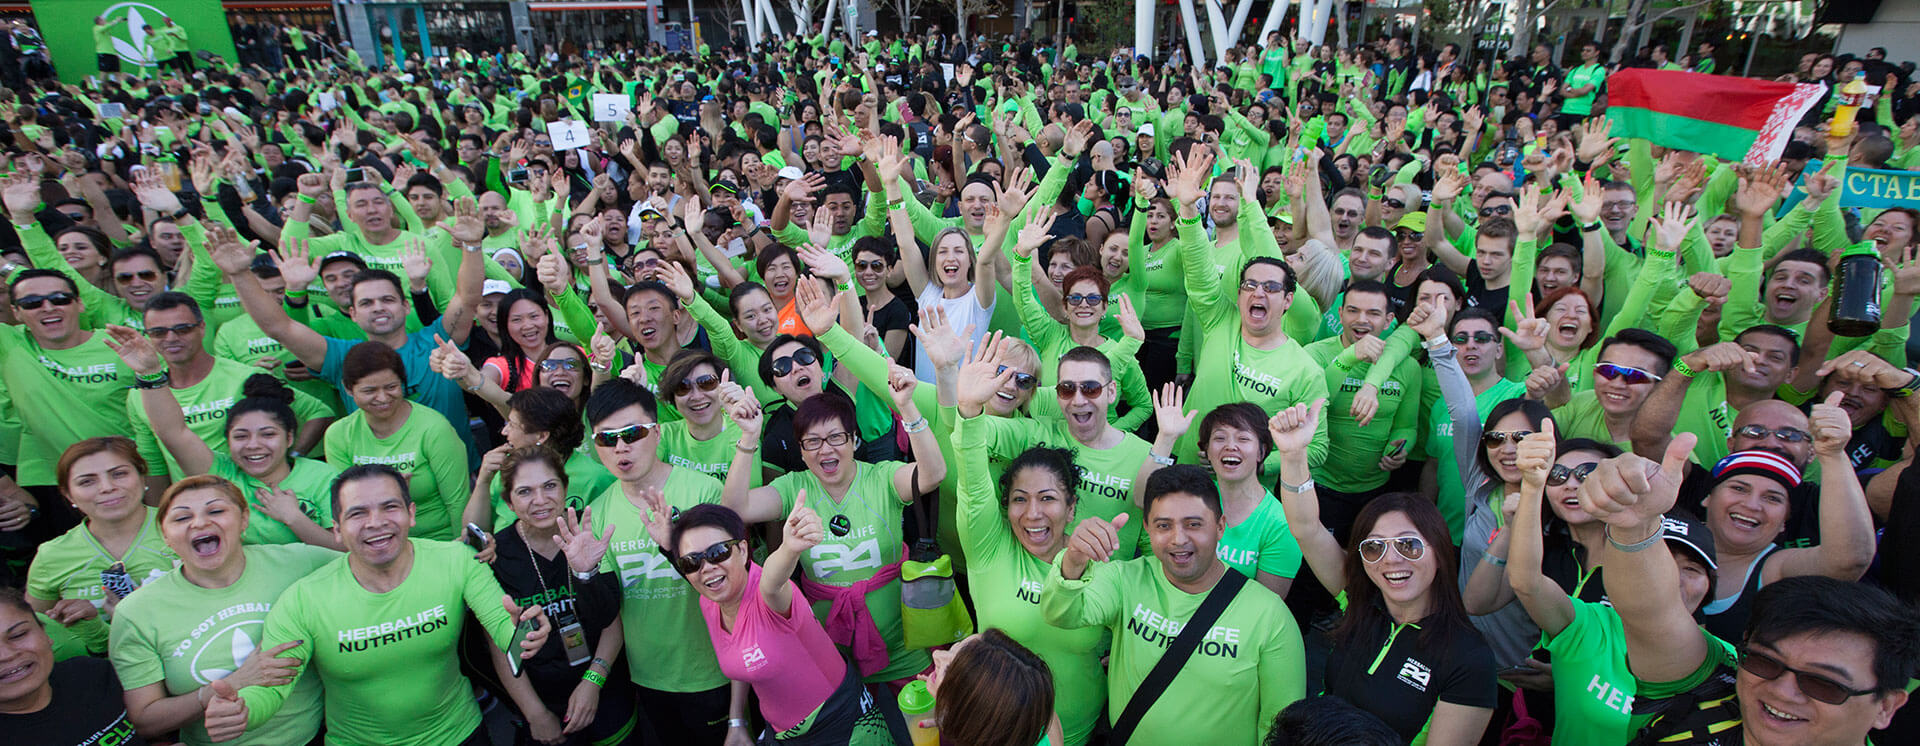 The Herbalife Family